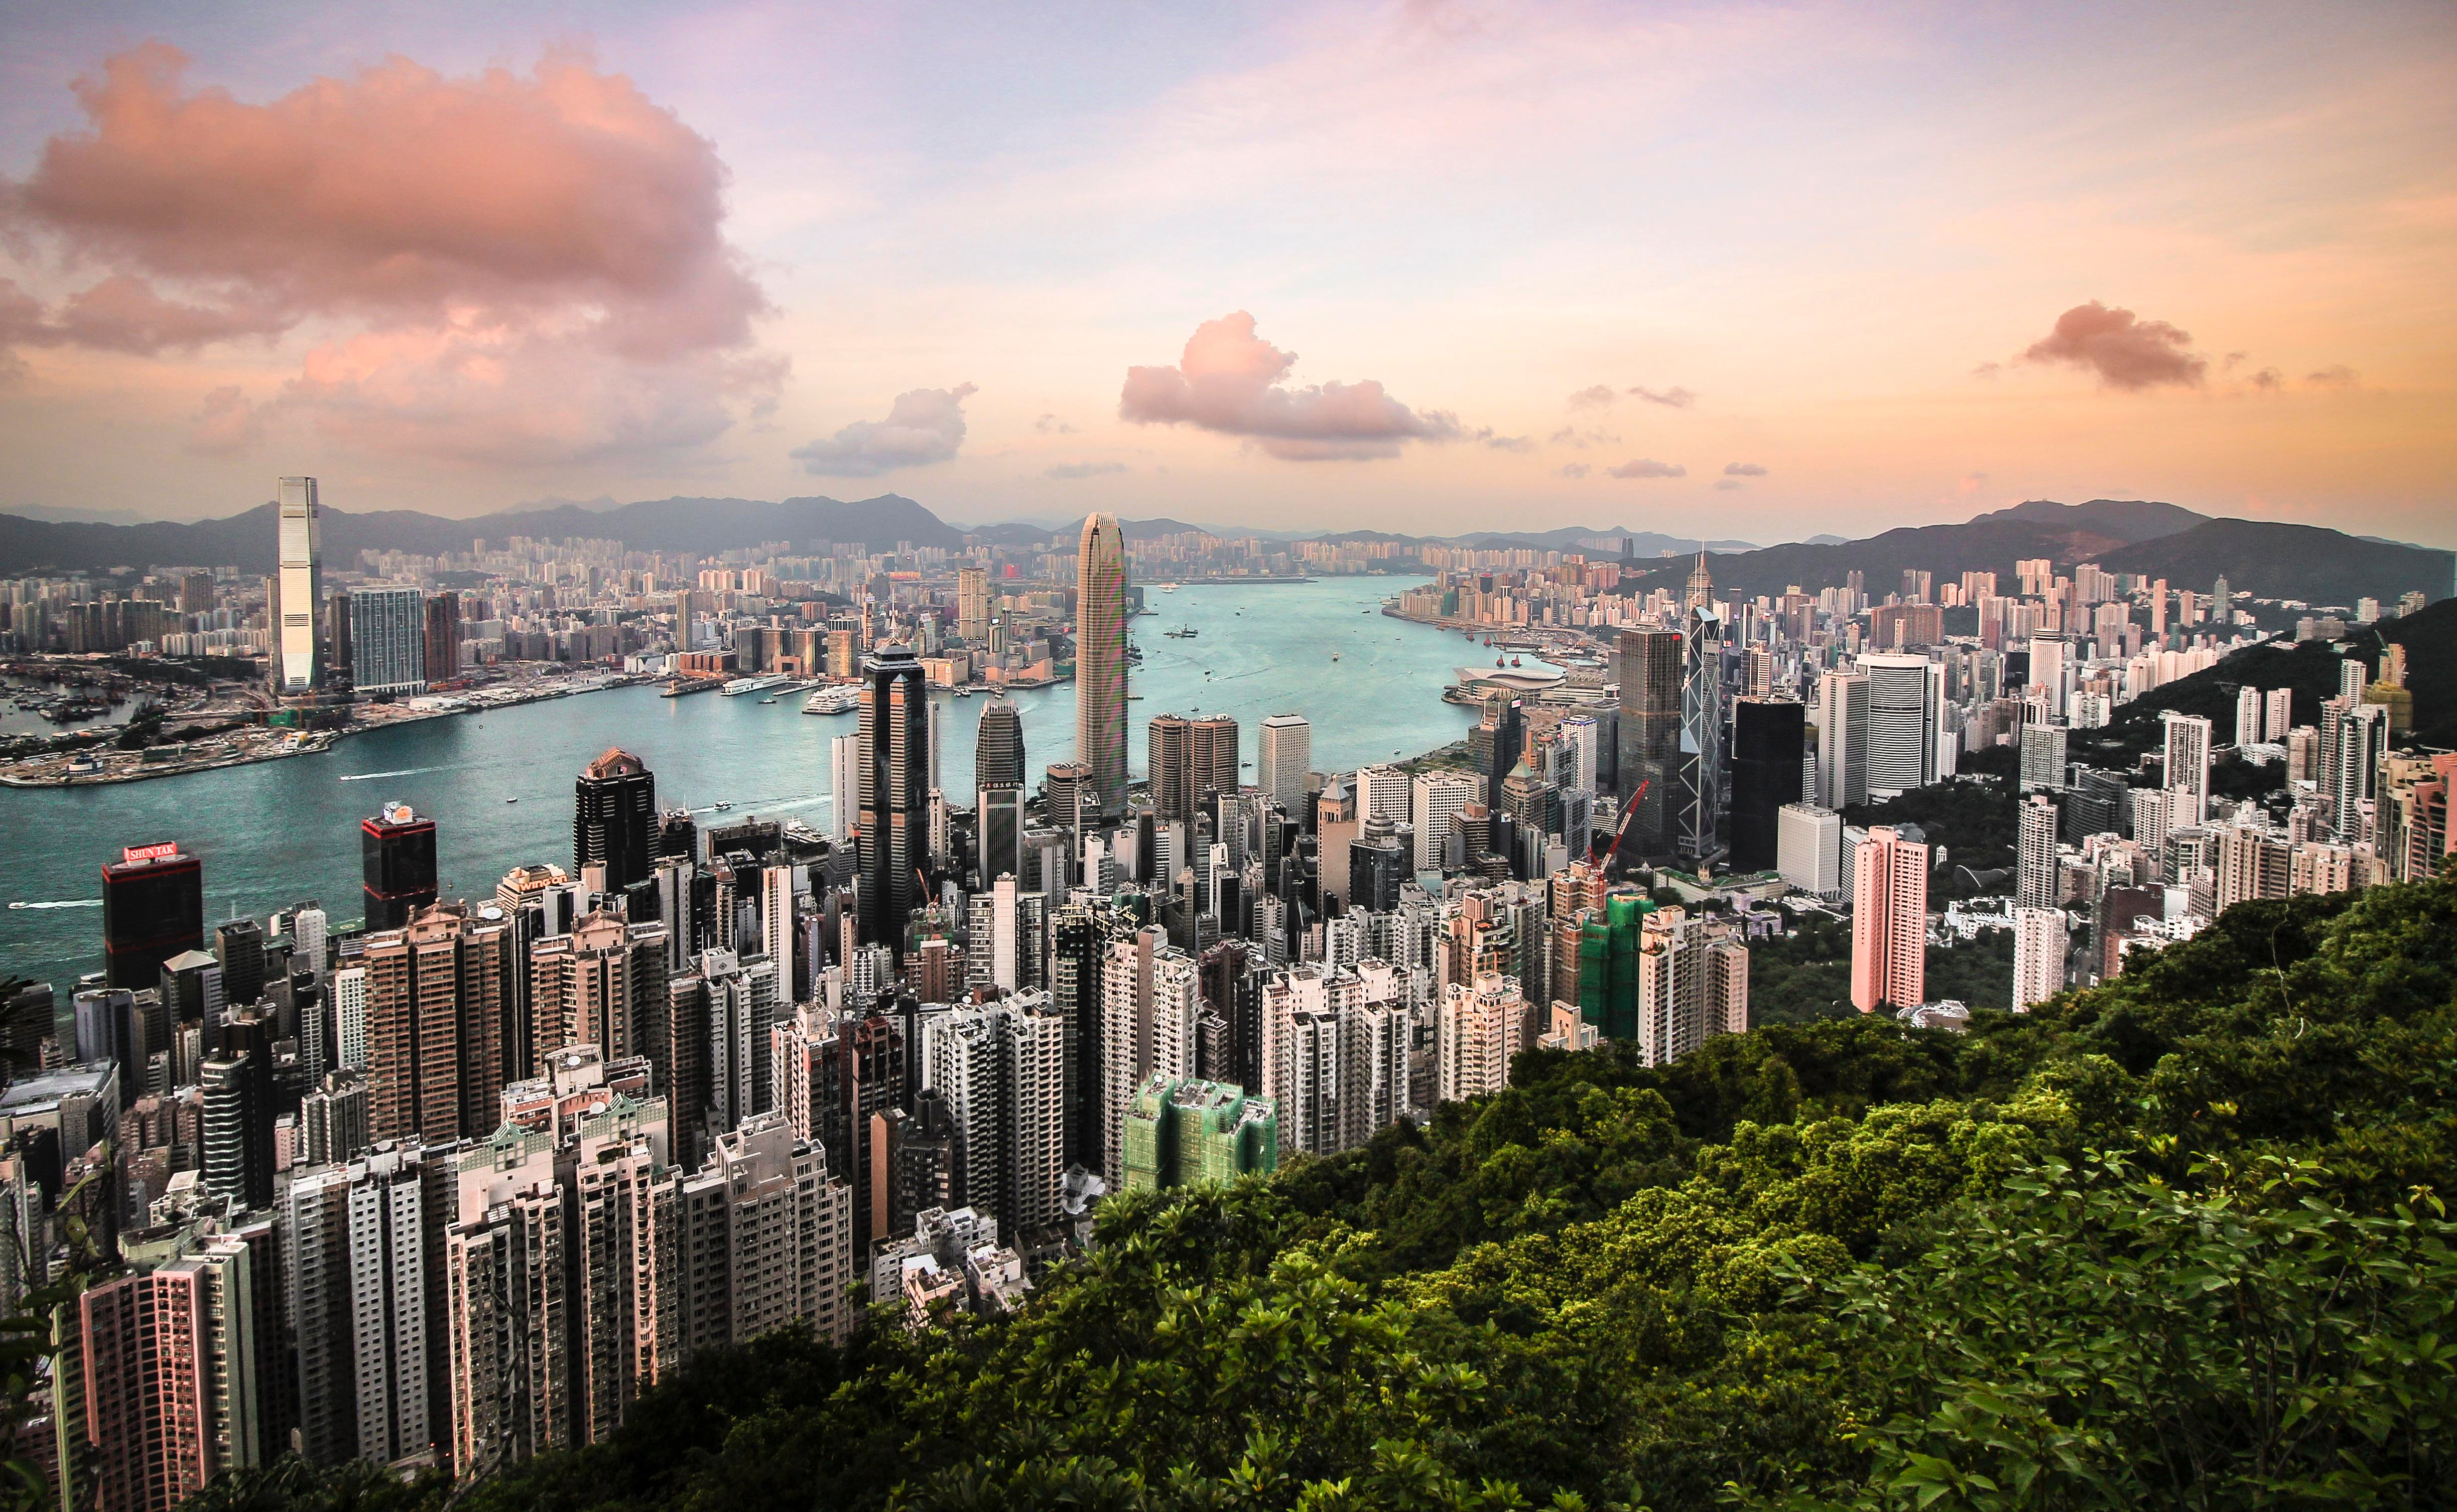 The winds of change are blowing from the East: Hong Kong and mainland China based buyers invest in Prime Central London property